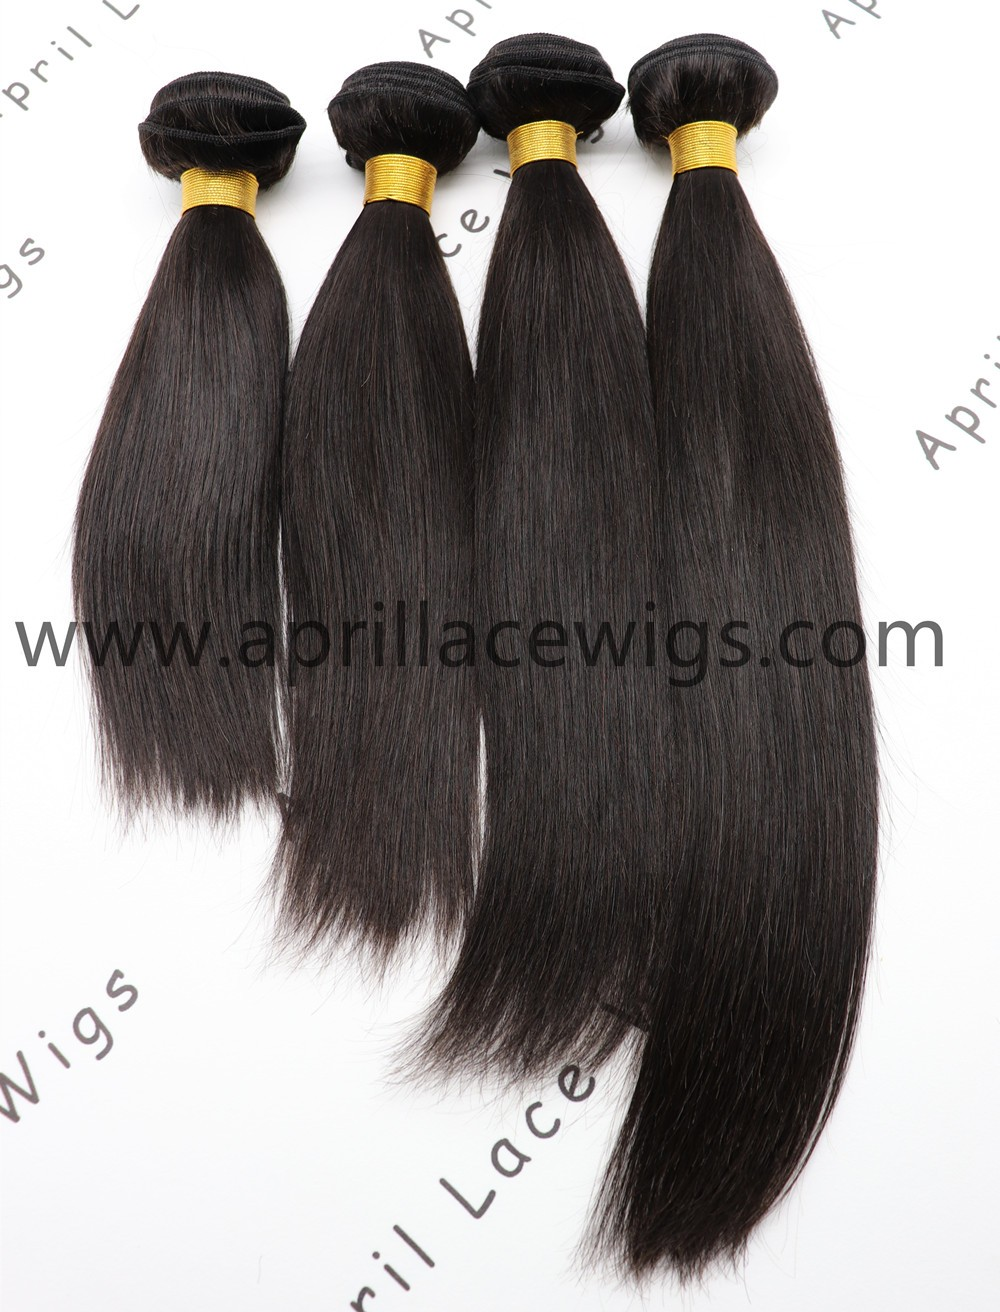 4 bundles deal, straight bundles, deep wave bundles, body wave bundles, curly bundles